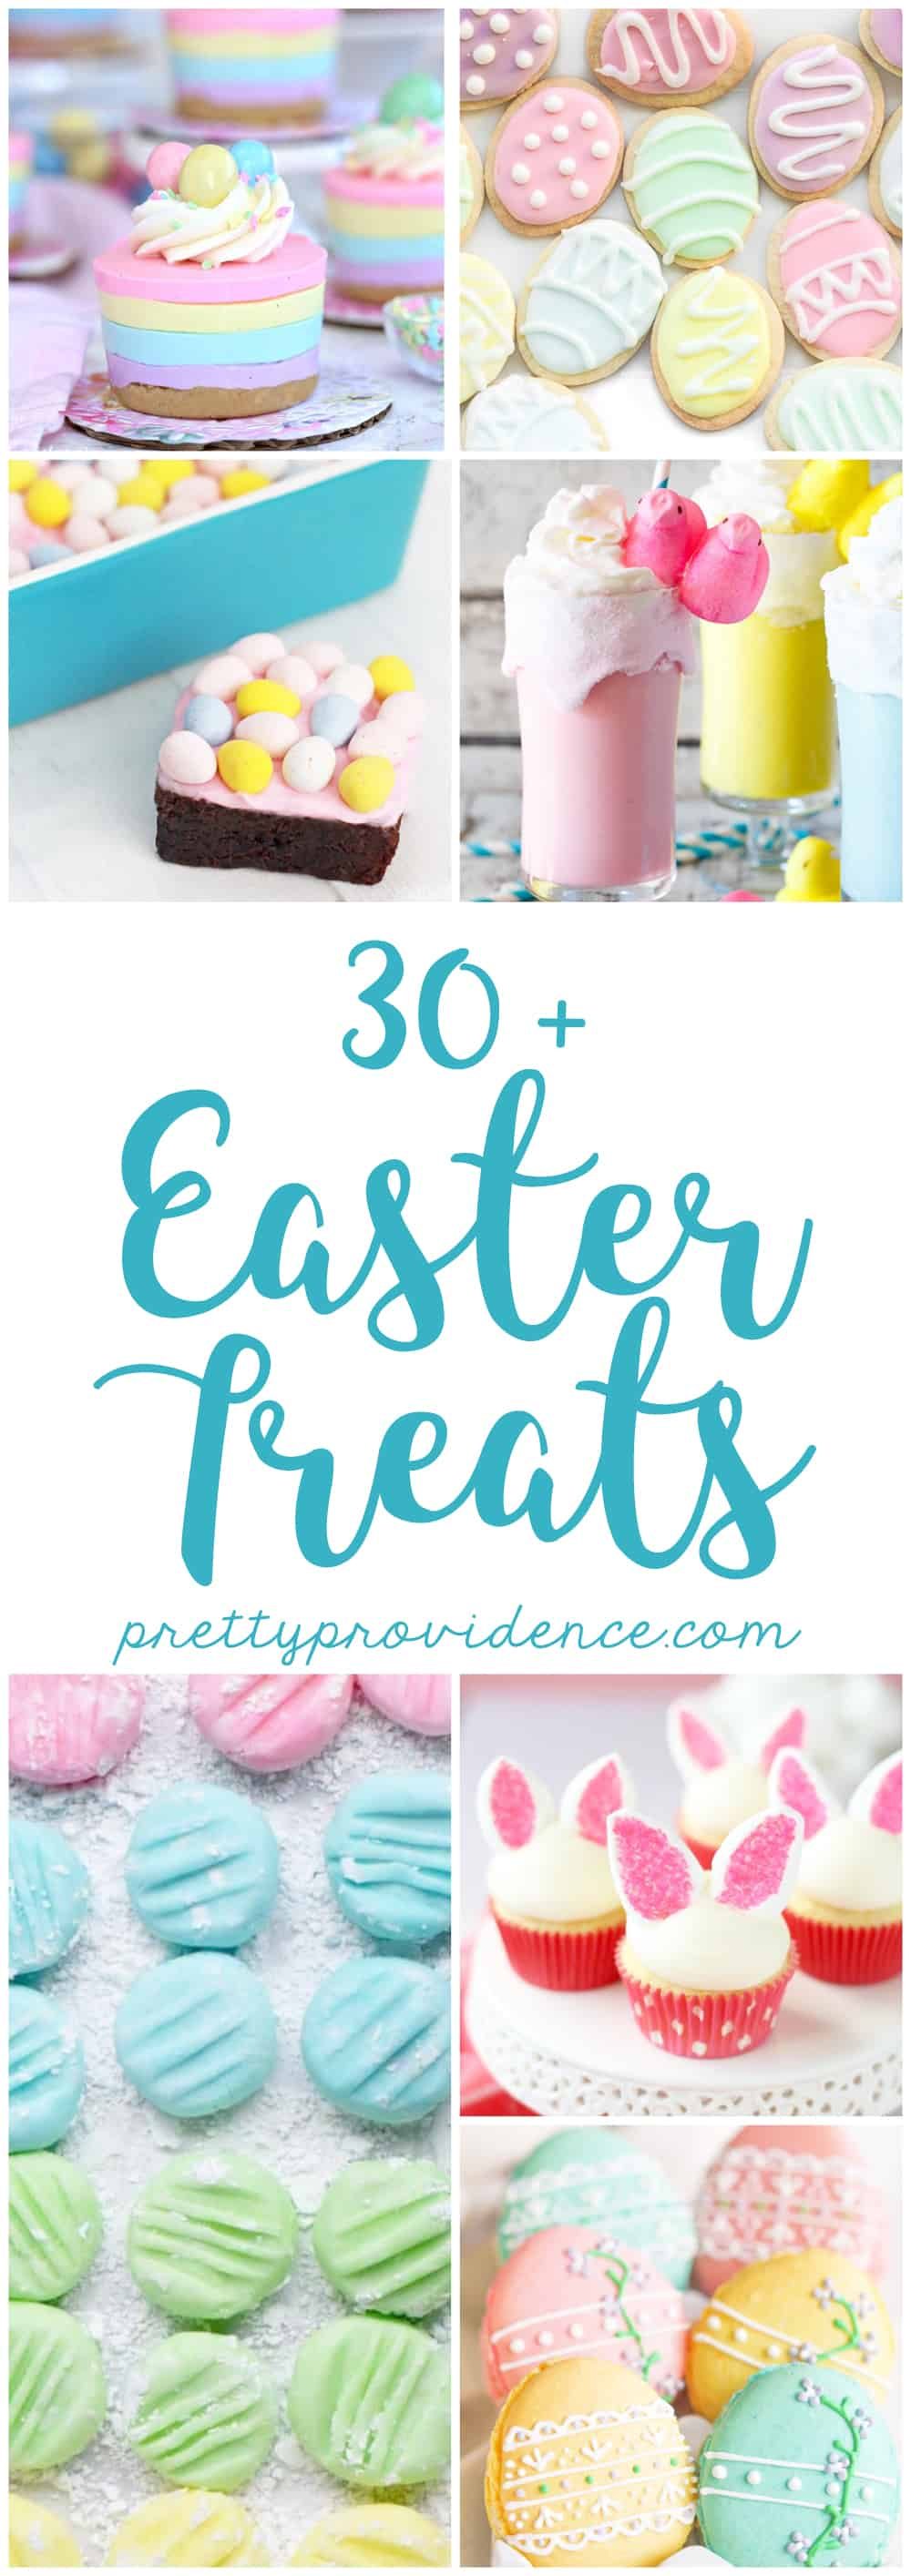 30 Festive Christmas Acrylic Nail Designs: 30+ Fun Easter Dessert Recipes! Yummy And Festive